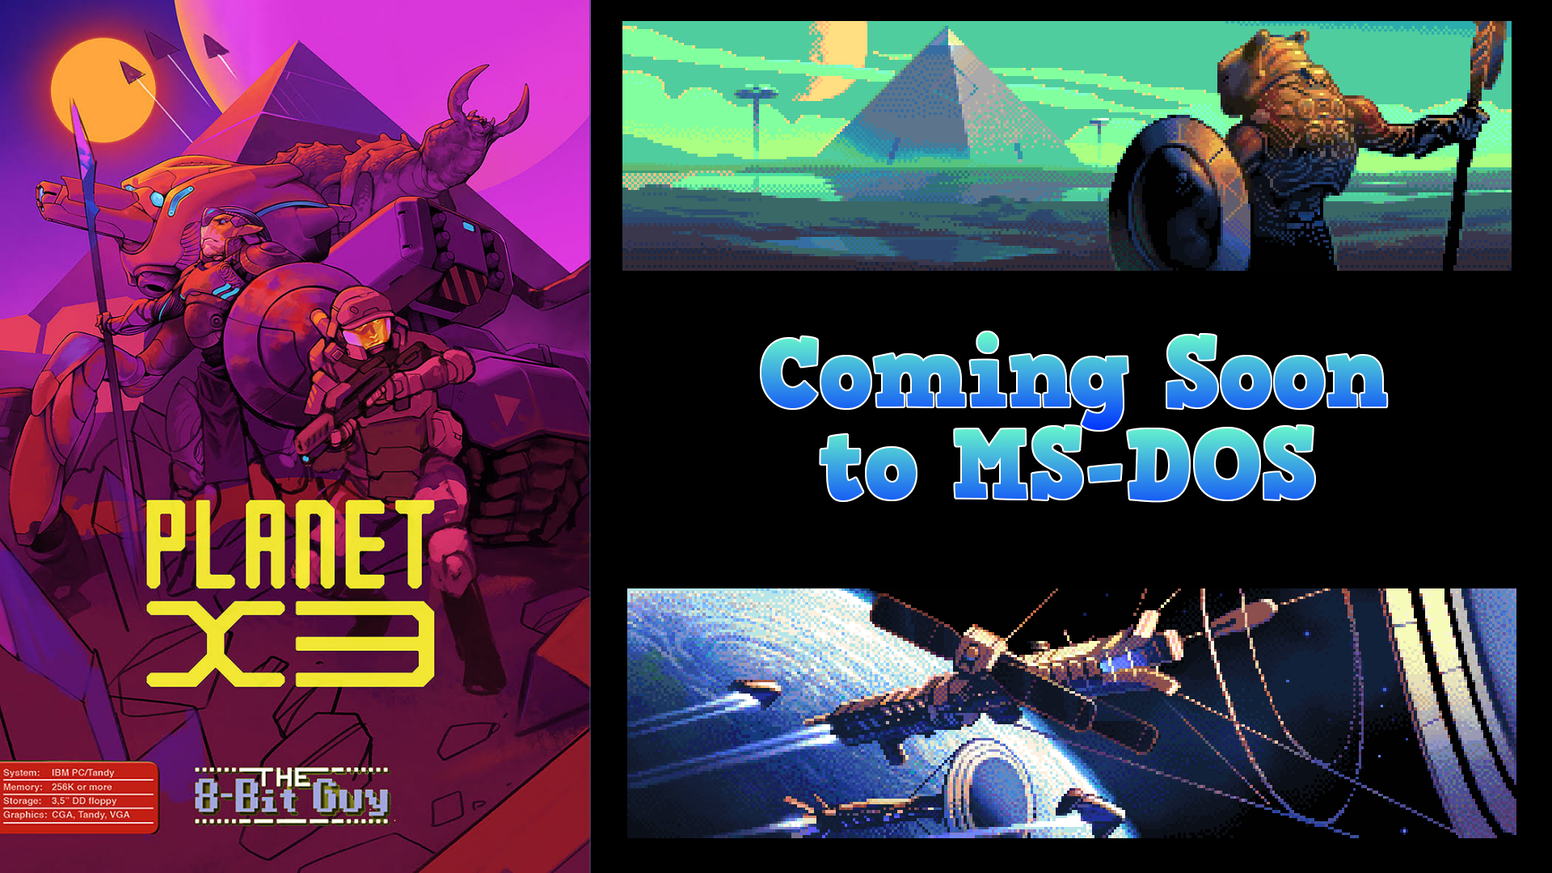 Planet X3 for MS-DOS by David Murray — Kickstarter